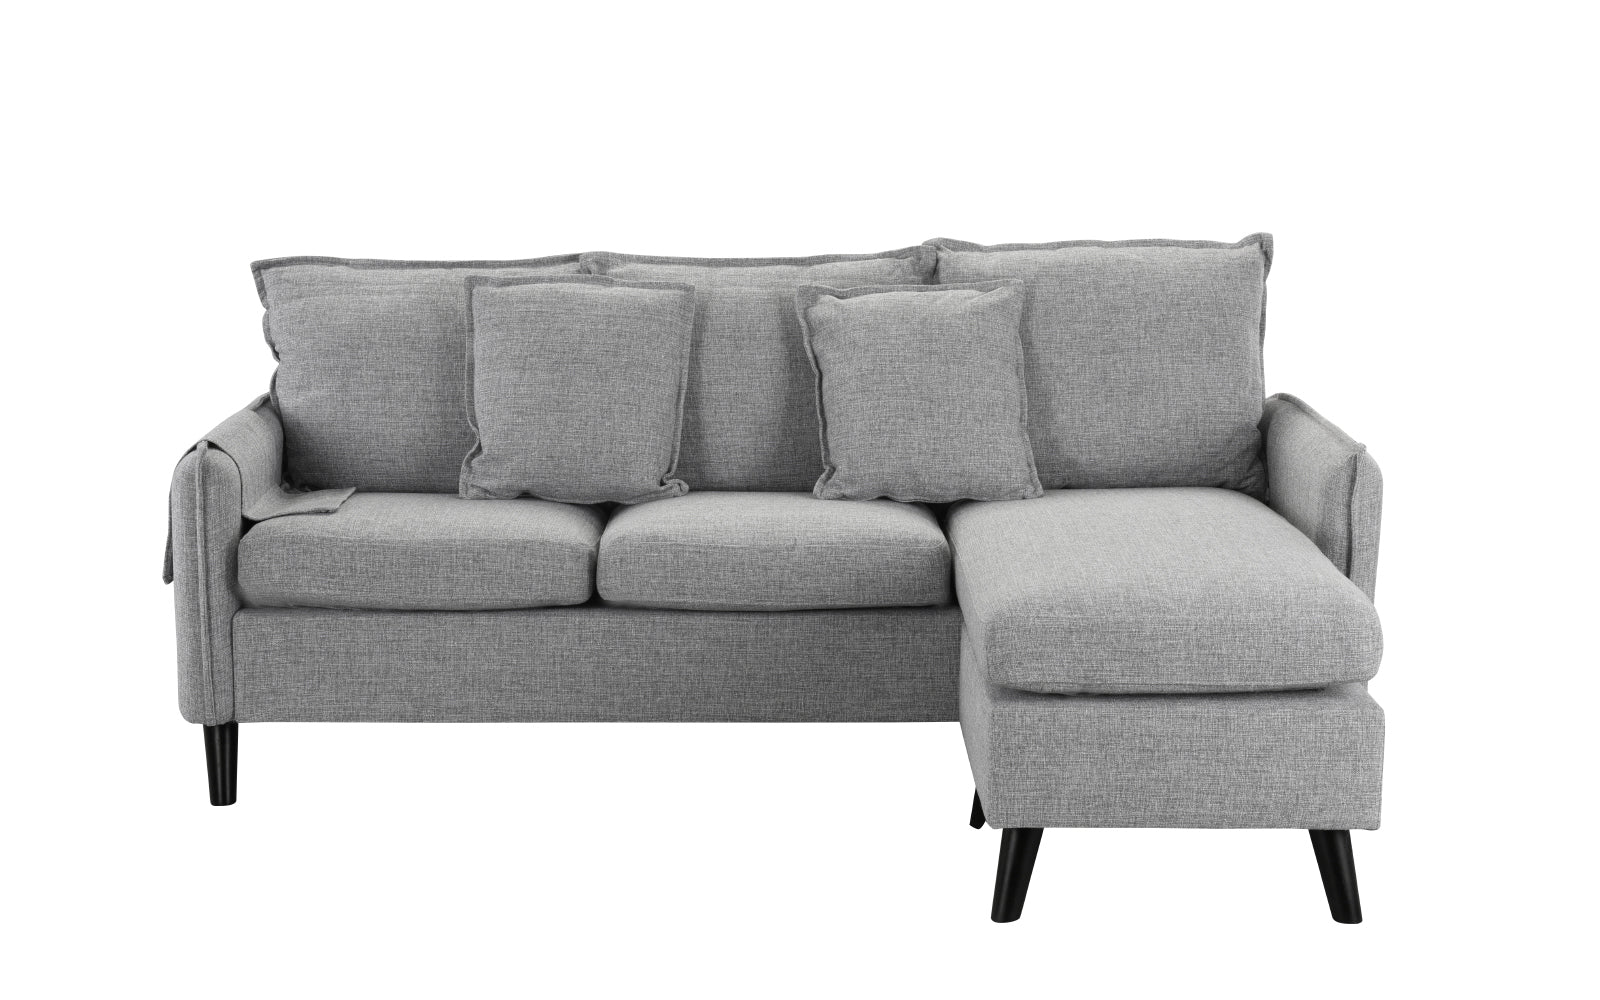 Space Saving Linen Sectional Image